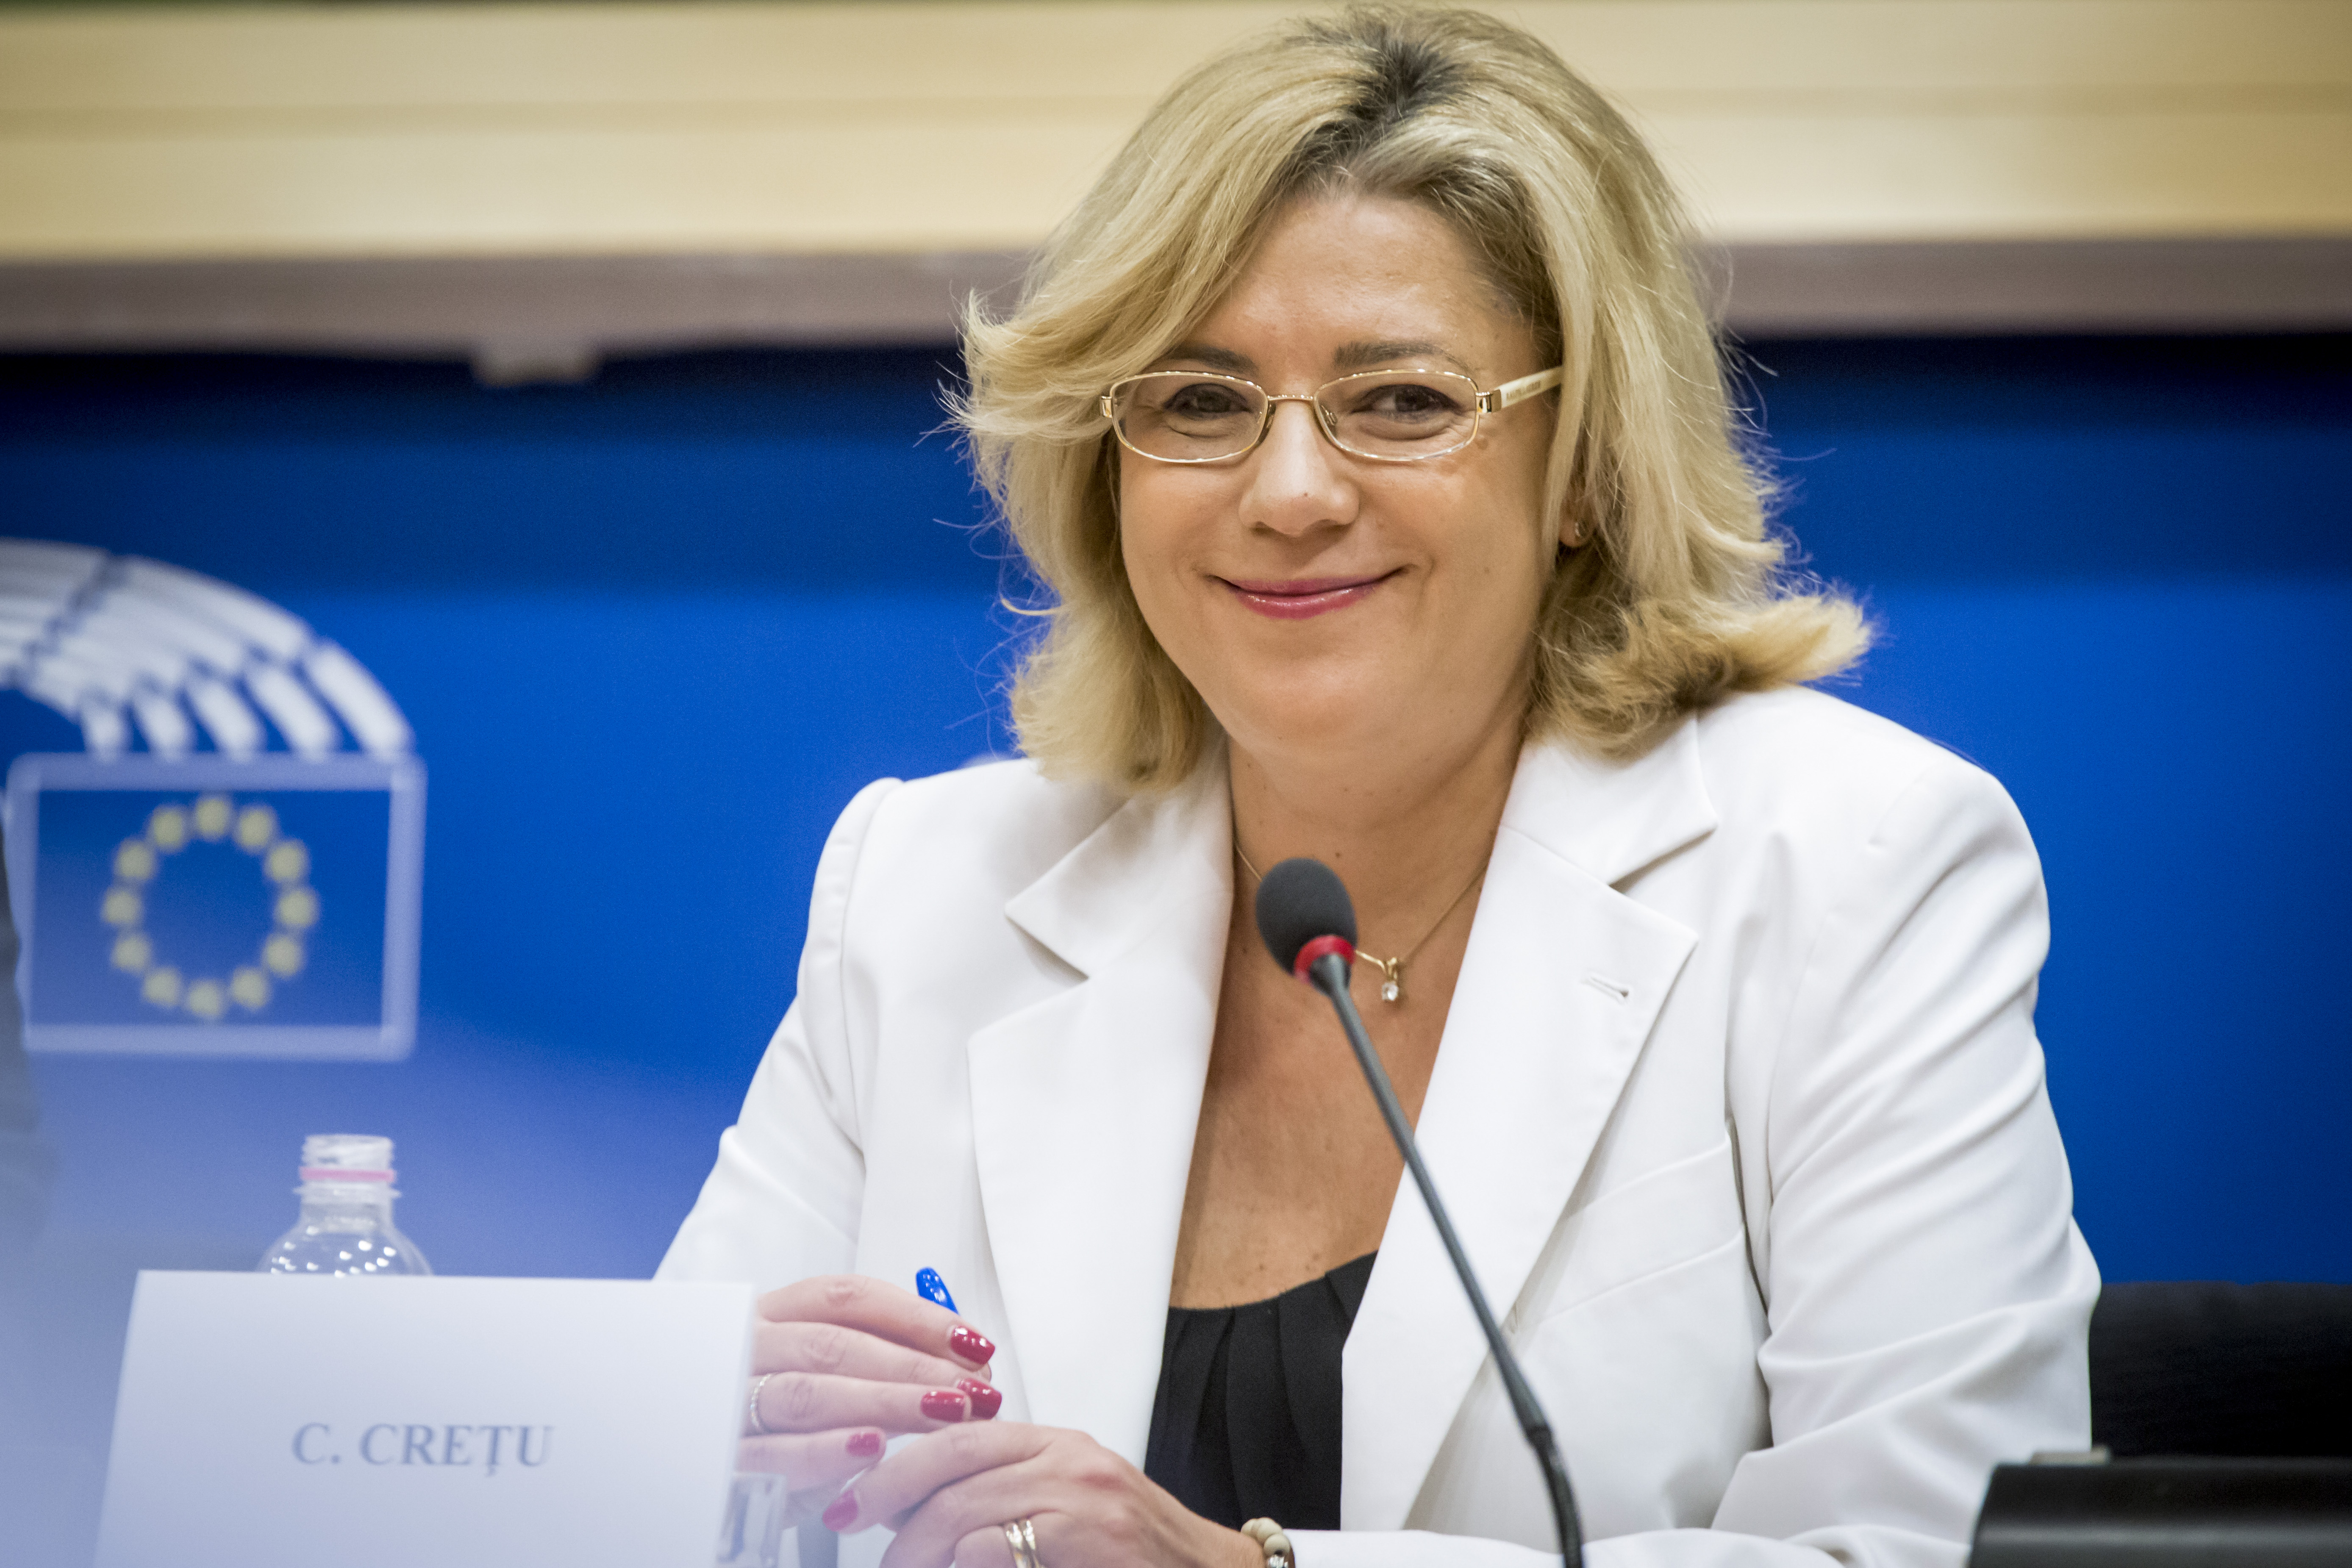 Photo of Corina Cretu, Commissioner for Regional Policy at the European Parliament, REGI Committee meeting